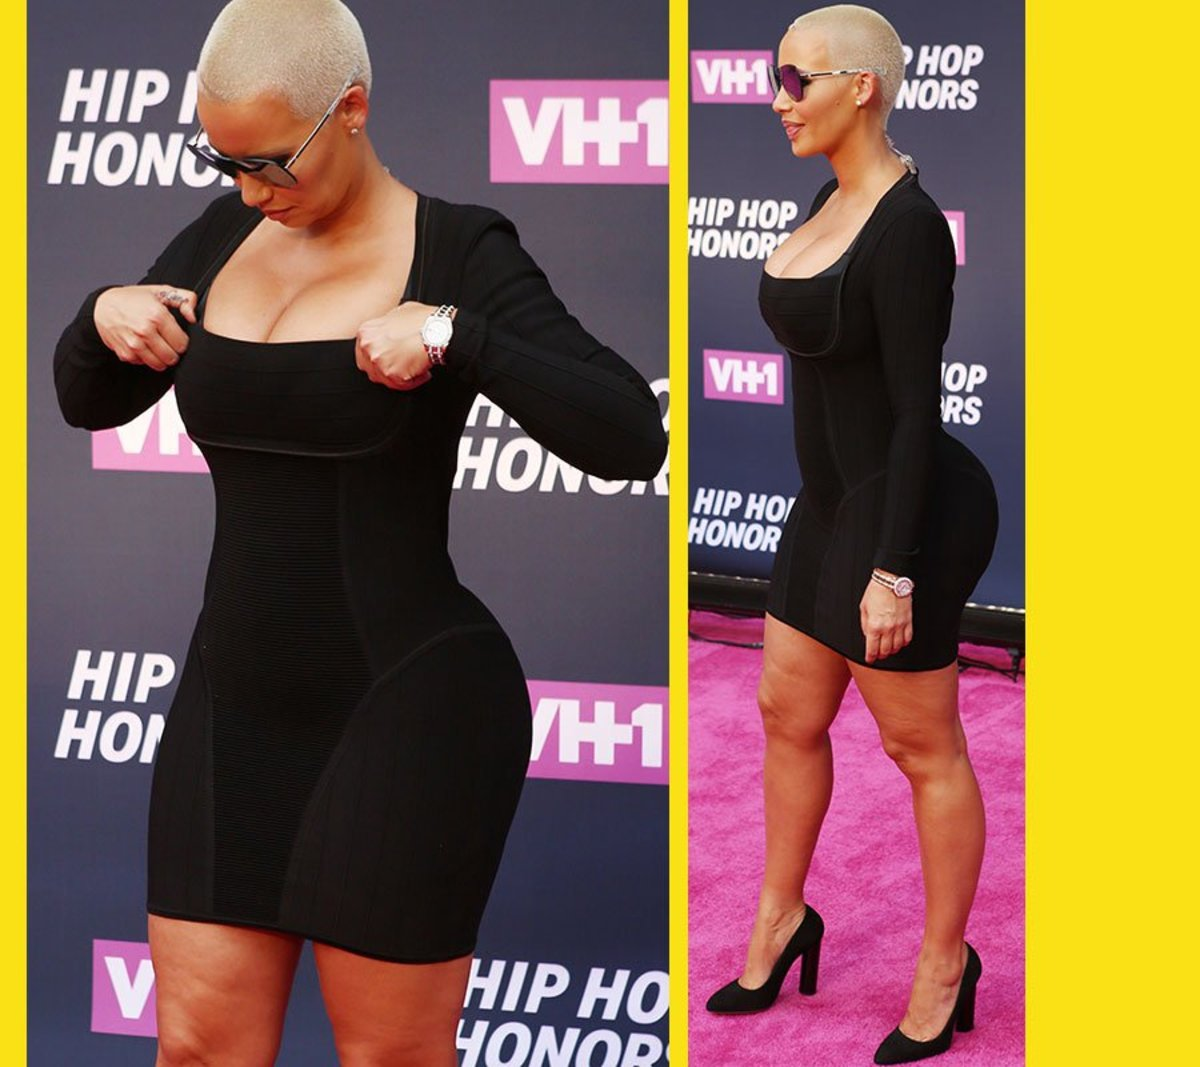 VH1honors6